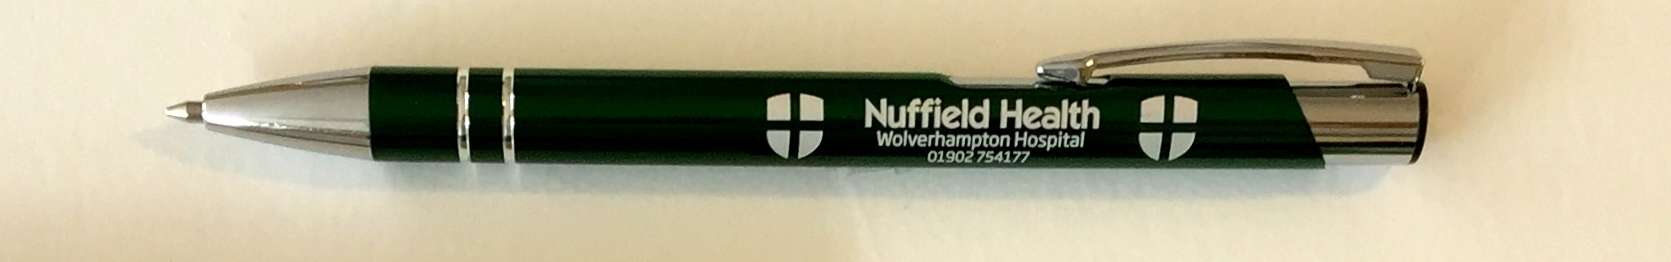 Customised Ballpoint Pen – Nuffield Health